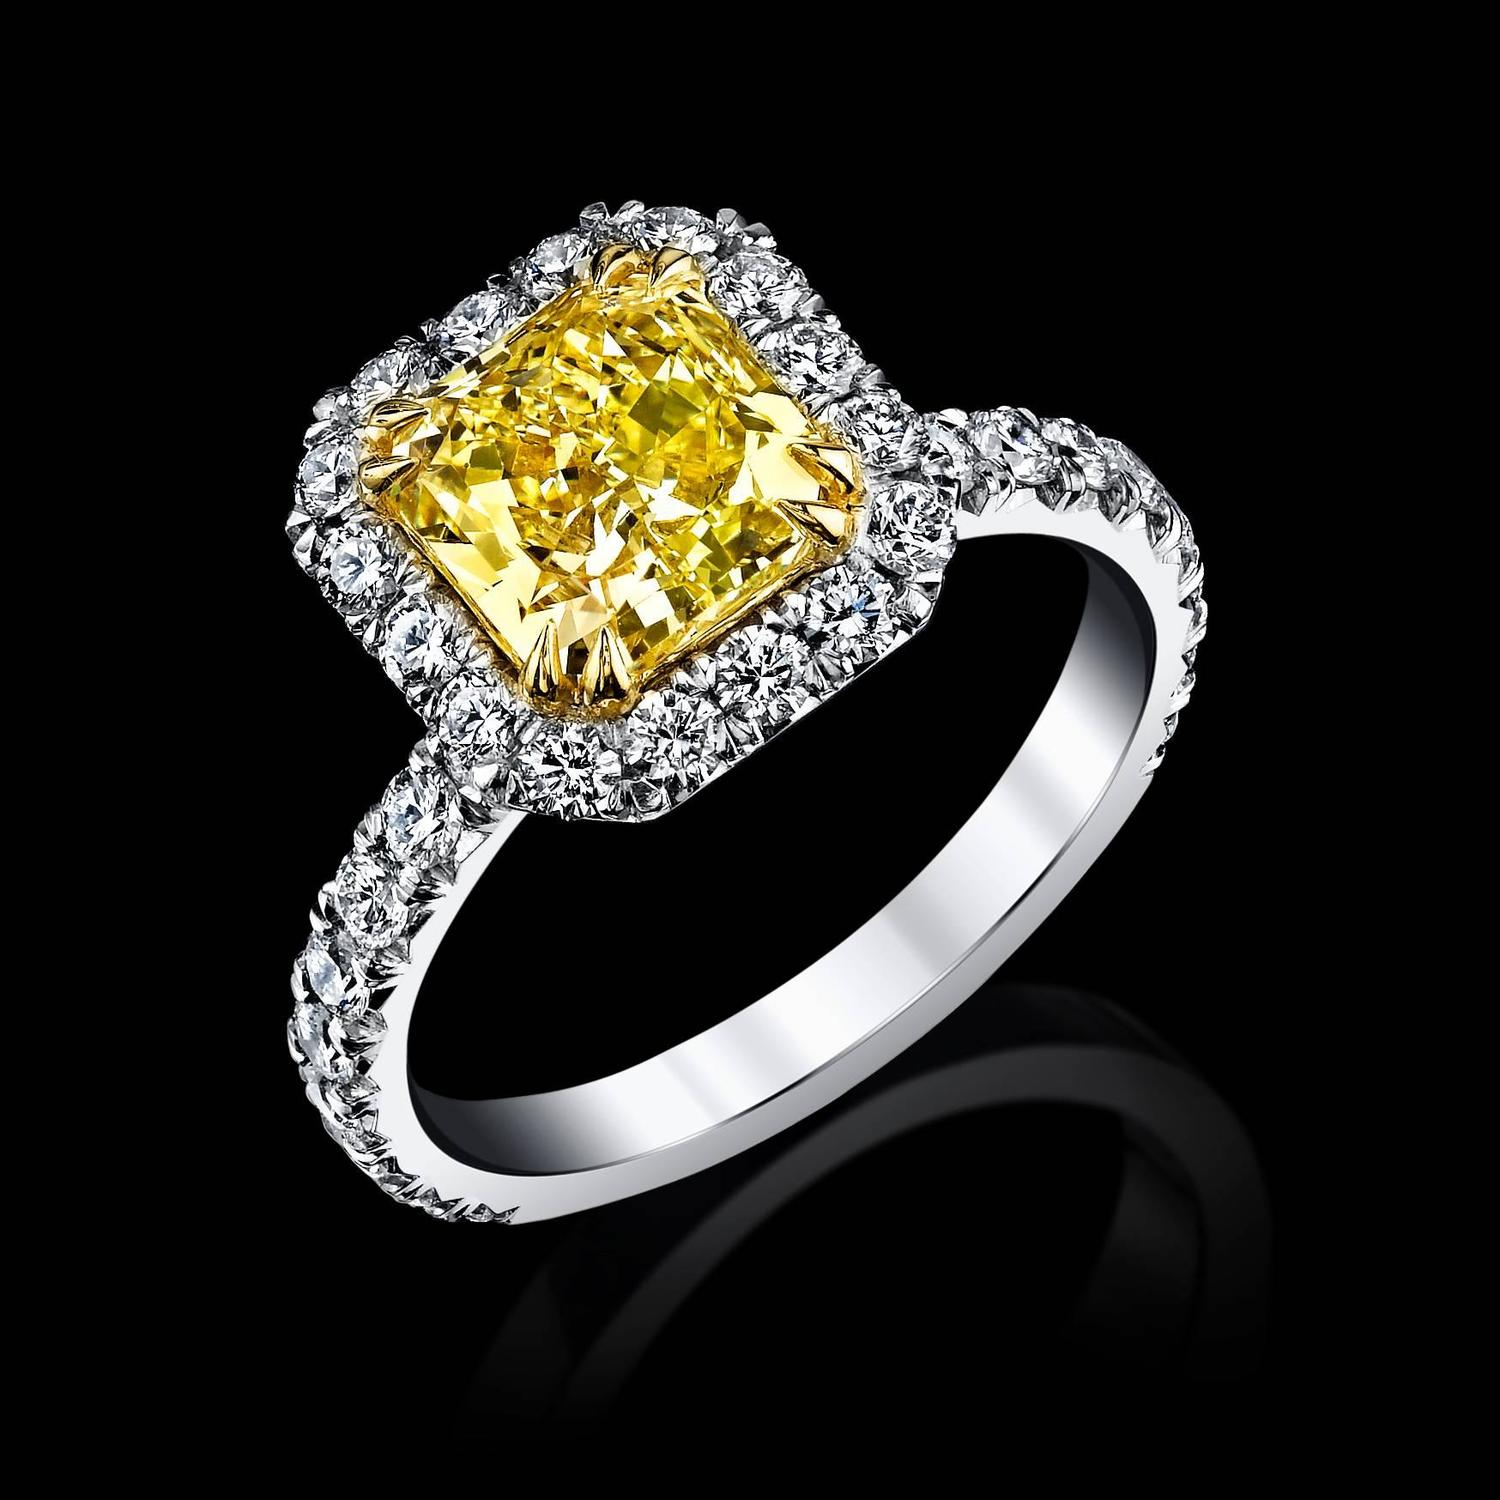 Internally Flawless Radiant Cut Canary Yellow Diamond Gold